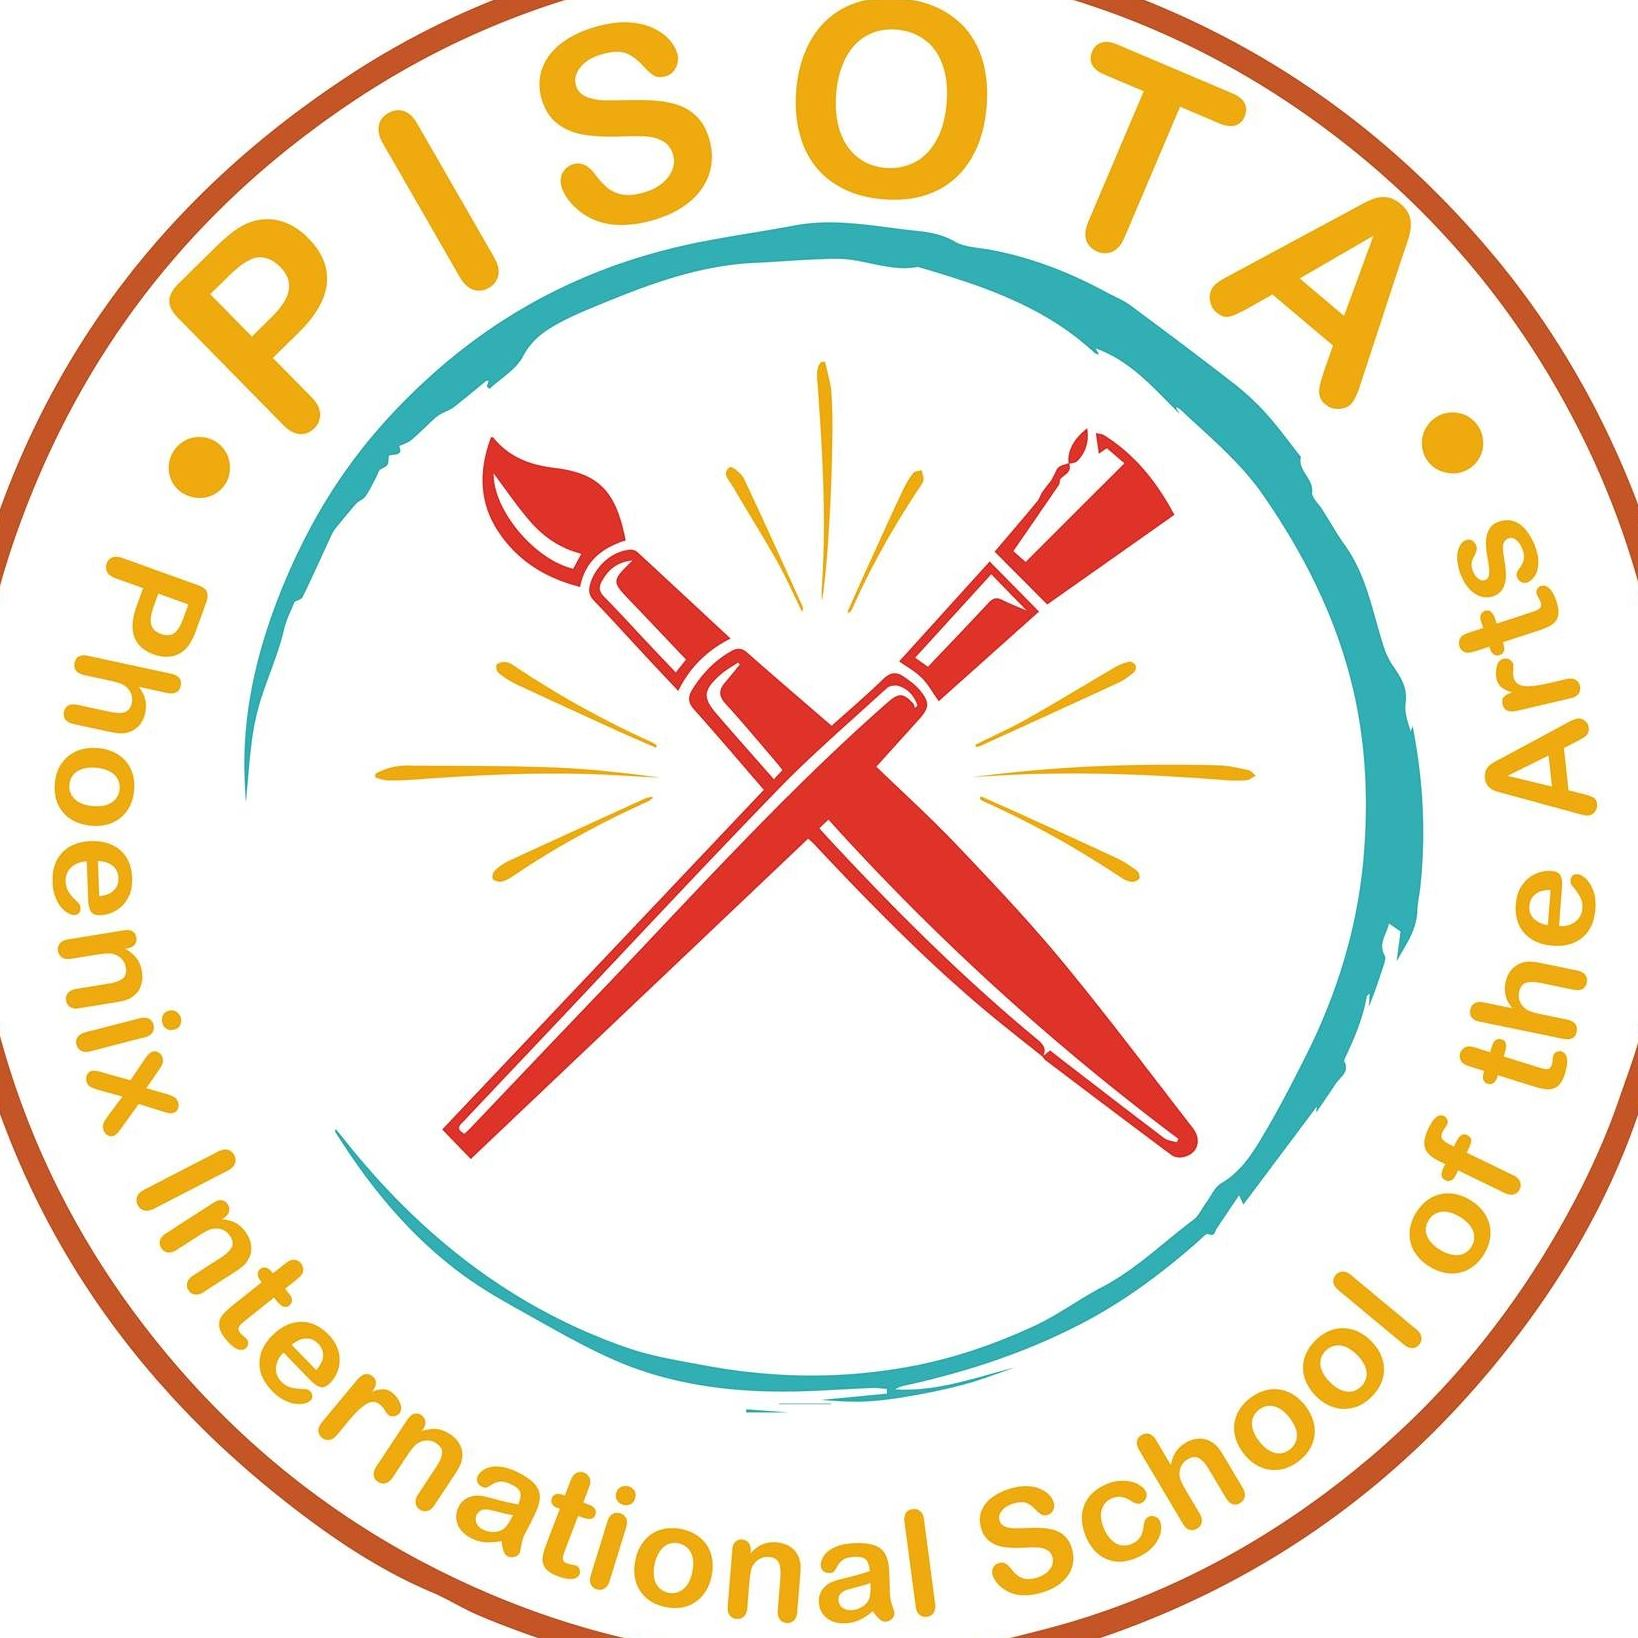 Phoenix International School of the Arts